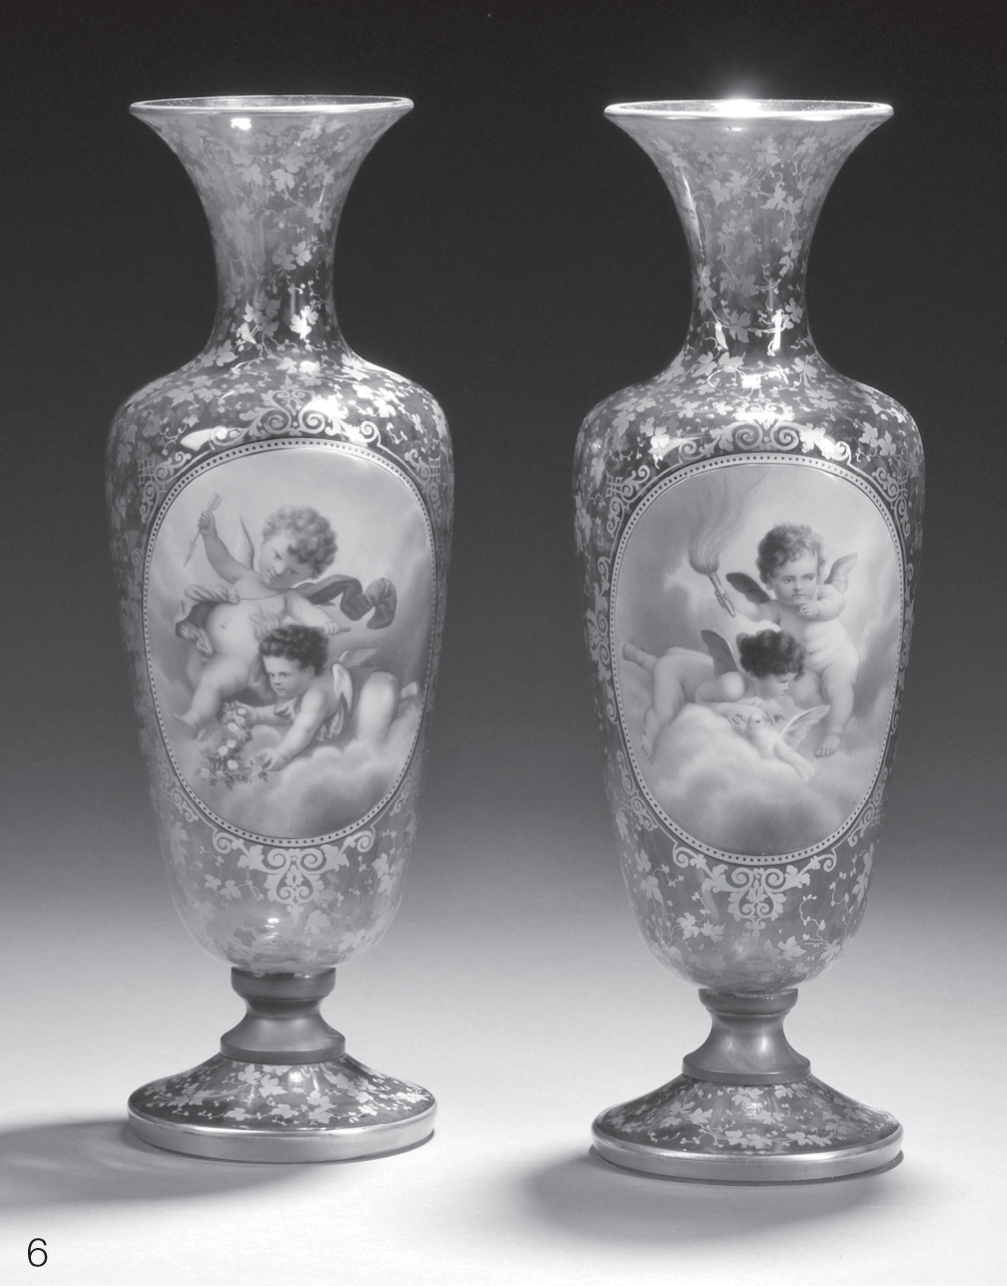 Skinner Online Auction - The Barron Collection of Glass